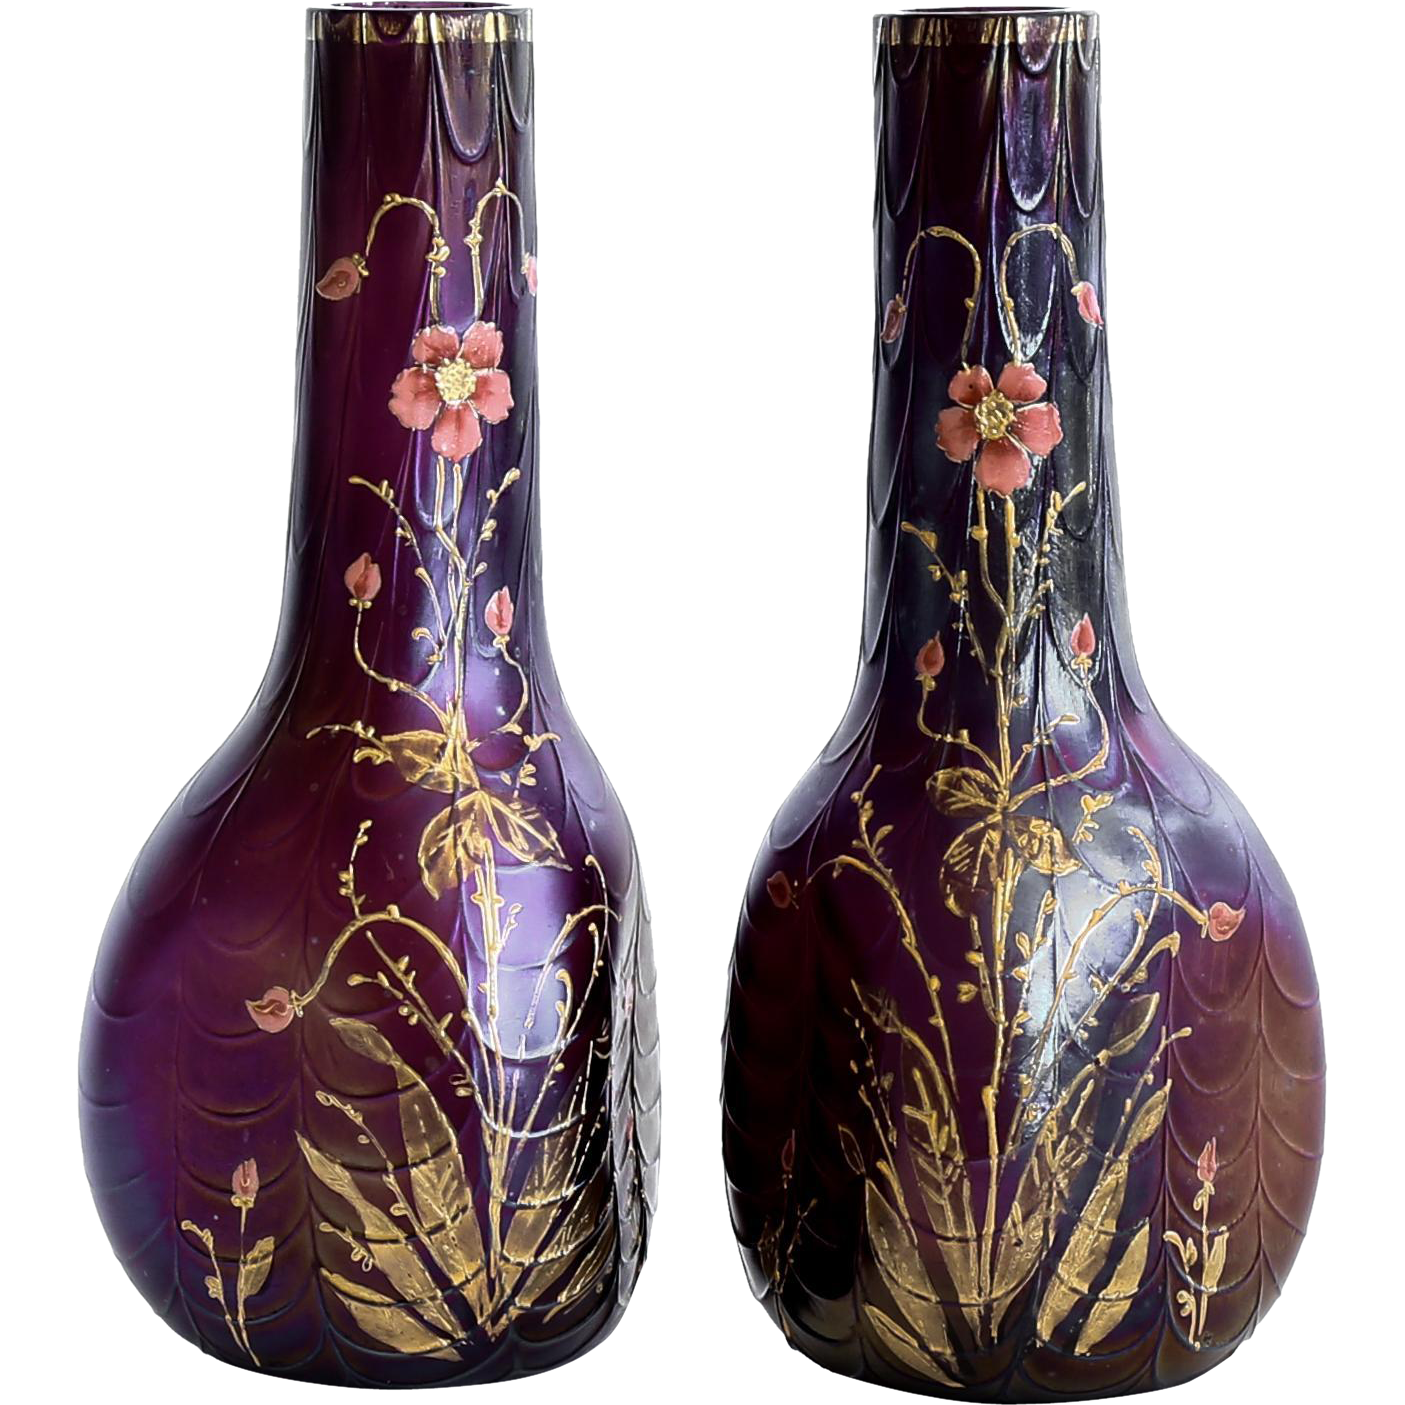 Exceptional Pair Of Antique Loetz Amethyst Art Nouveau Vases With Enameled Floral Motif